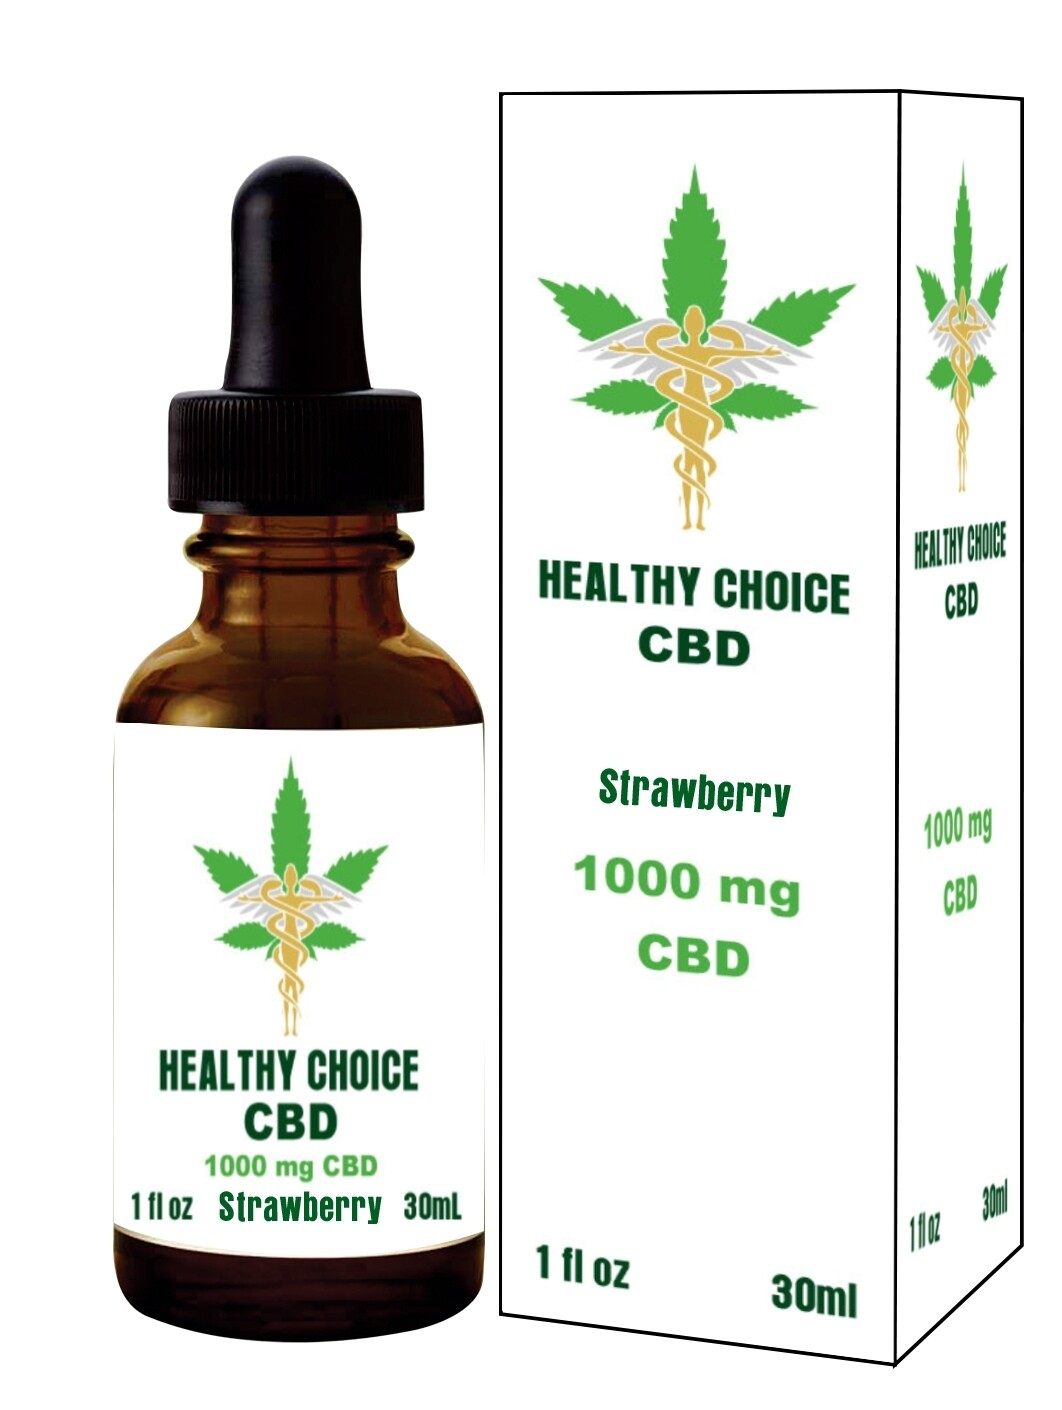 PREMIUM CBG,  CBD CBC  1000 MG WATERMELON FLAVOR BUY TWO GET ONE FREE